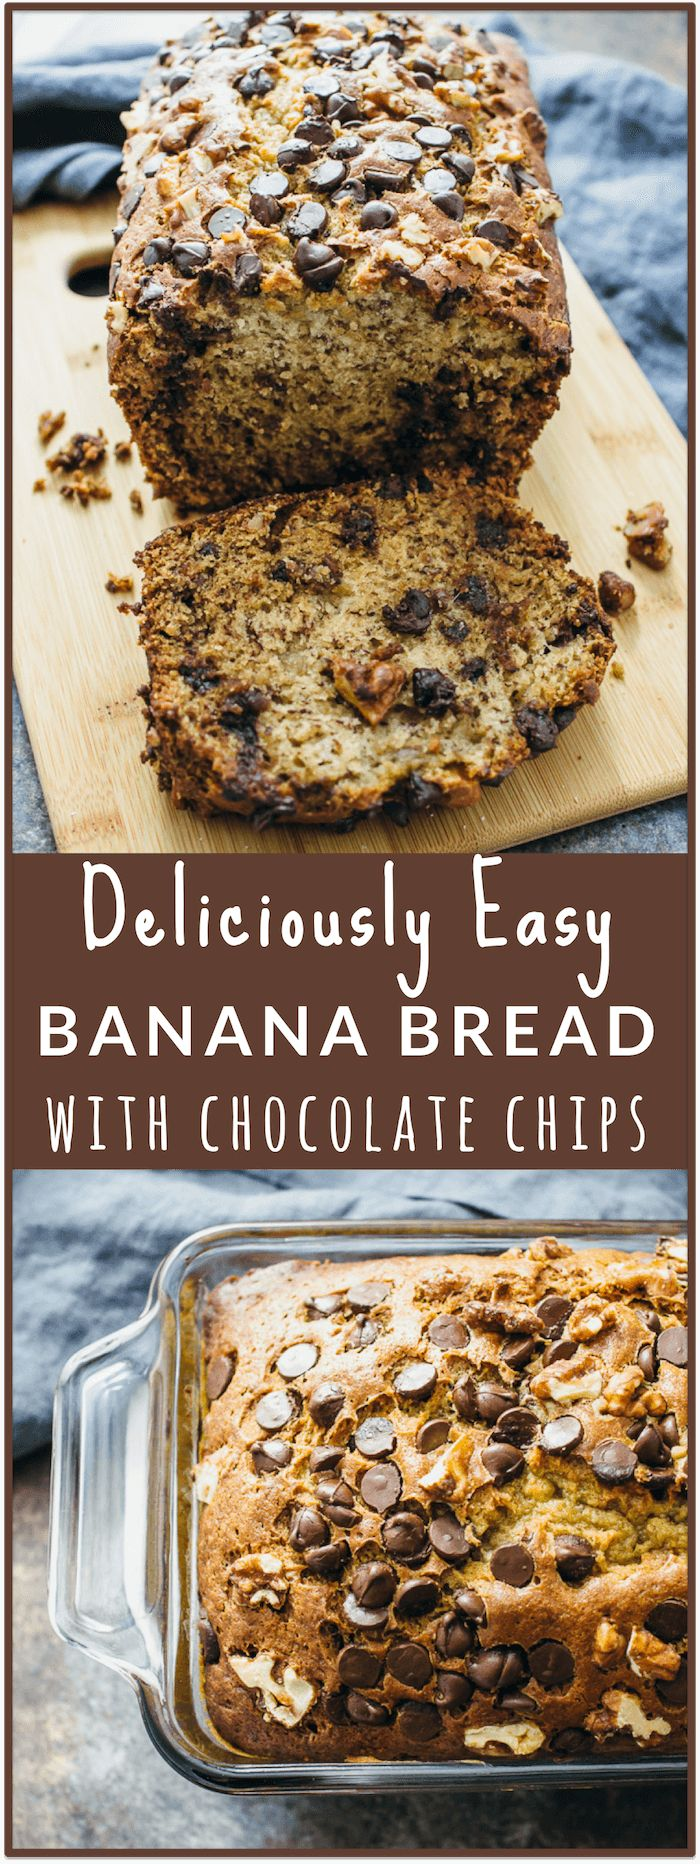 Banana bread with chocolate chips and walnuts | Recipe ...